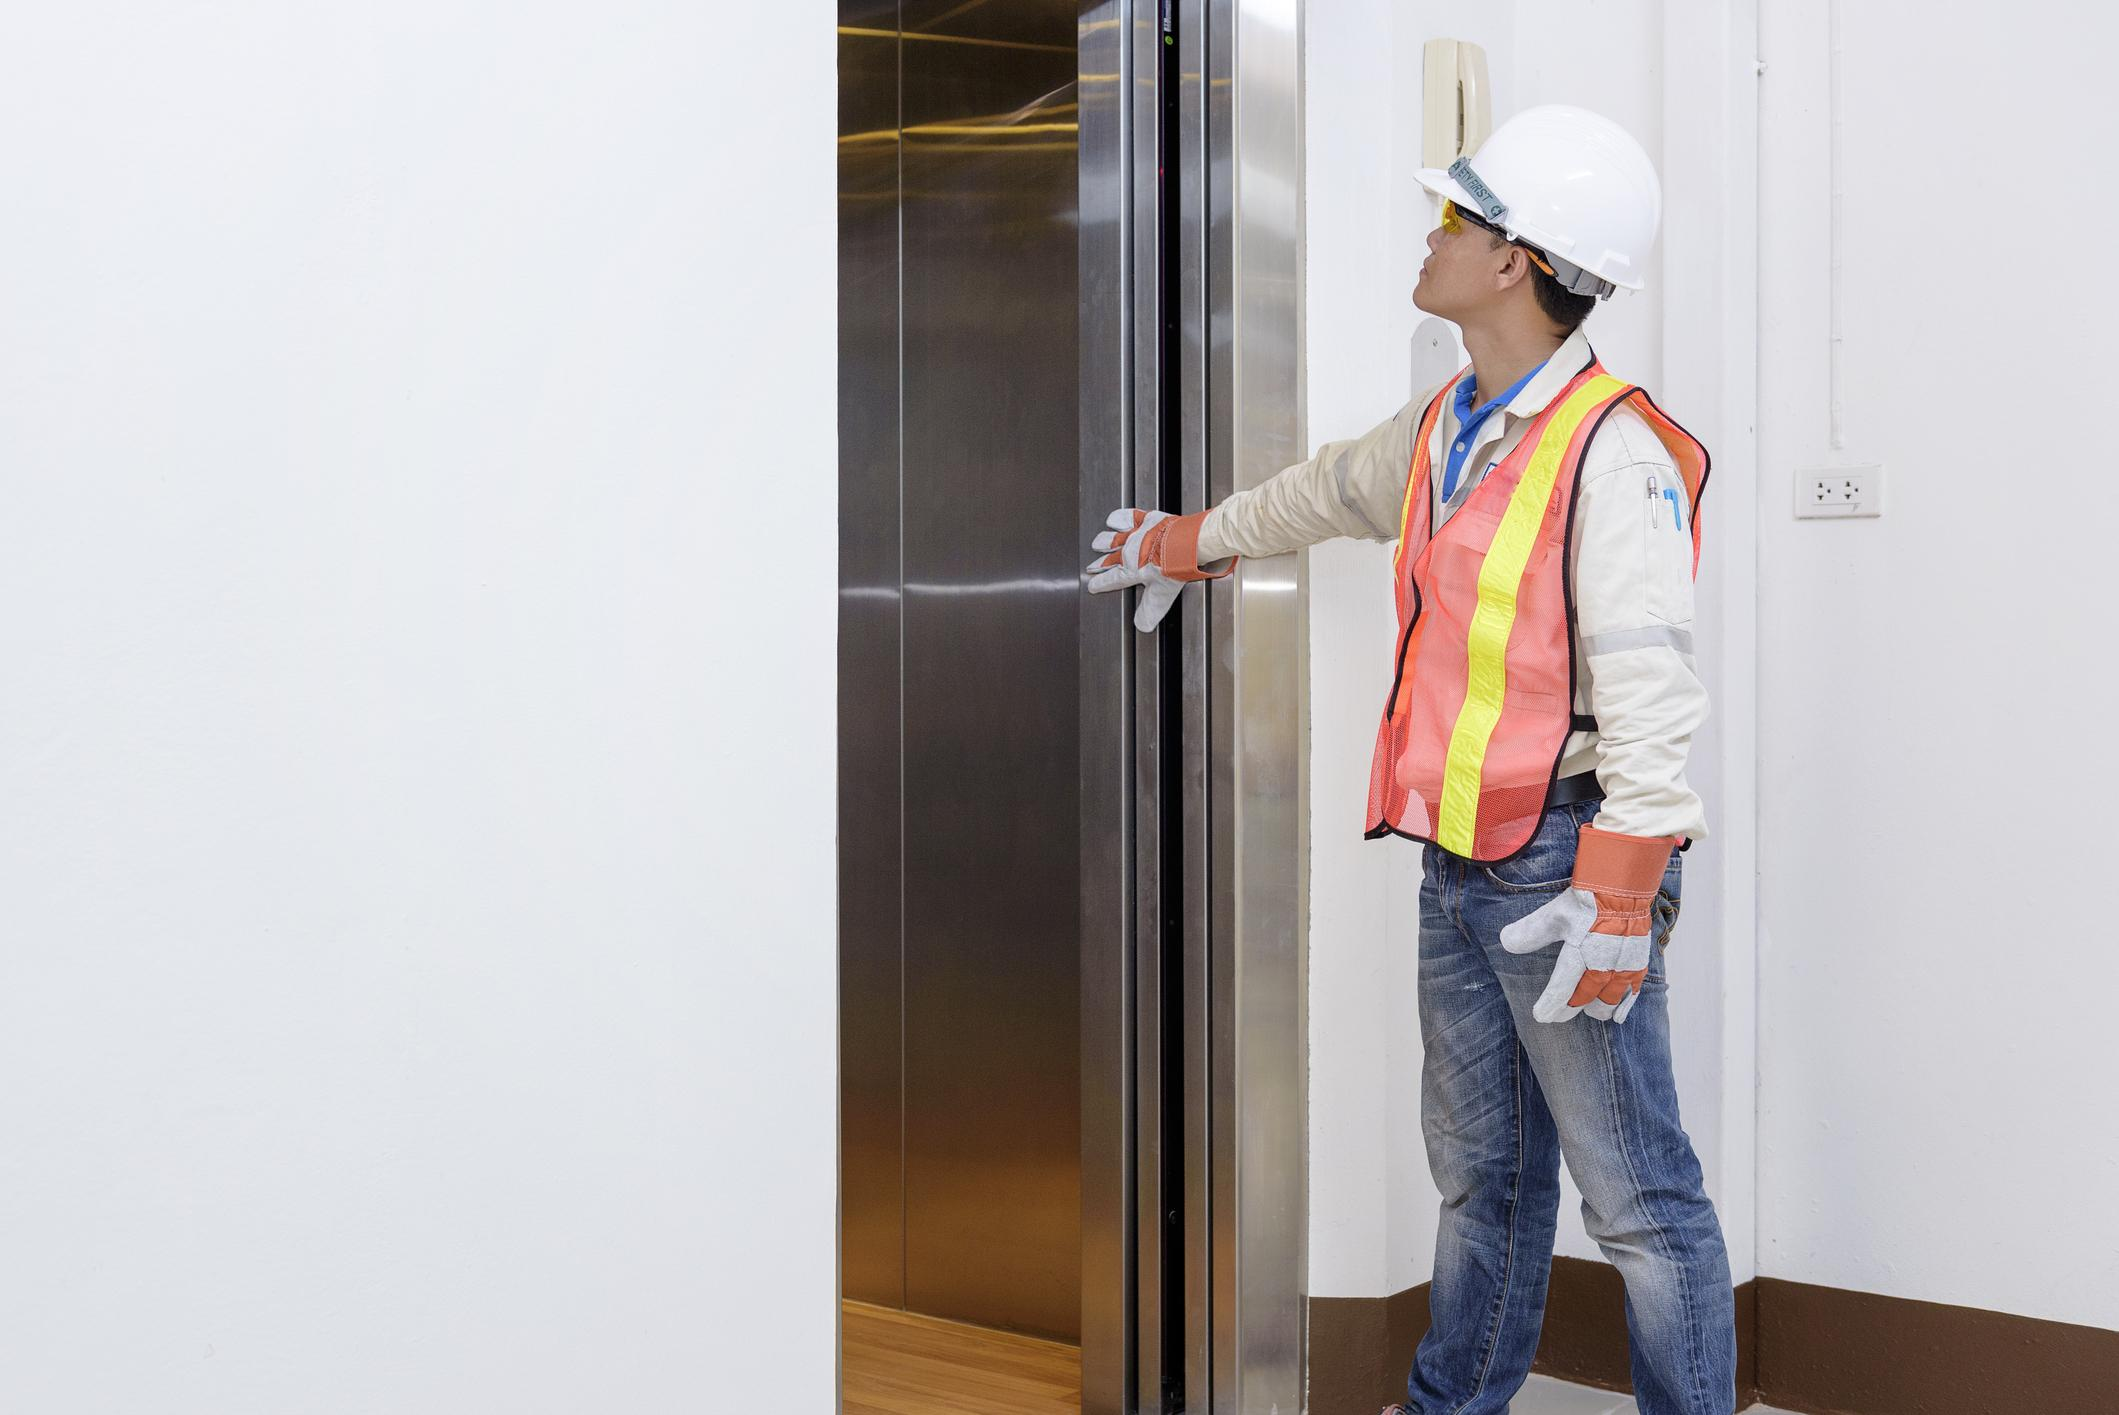 Man Crushed to Death by Elevator in NY